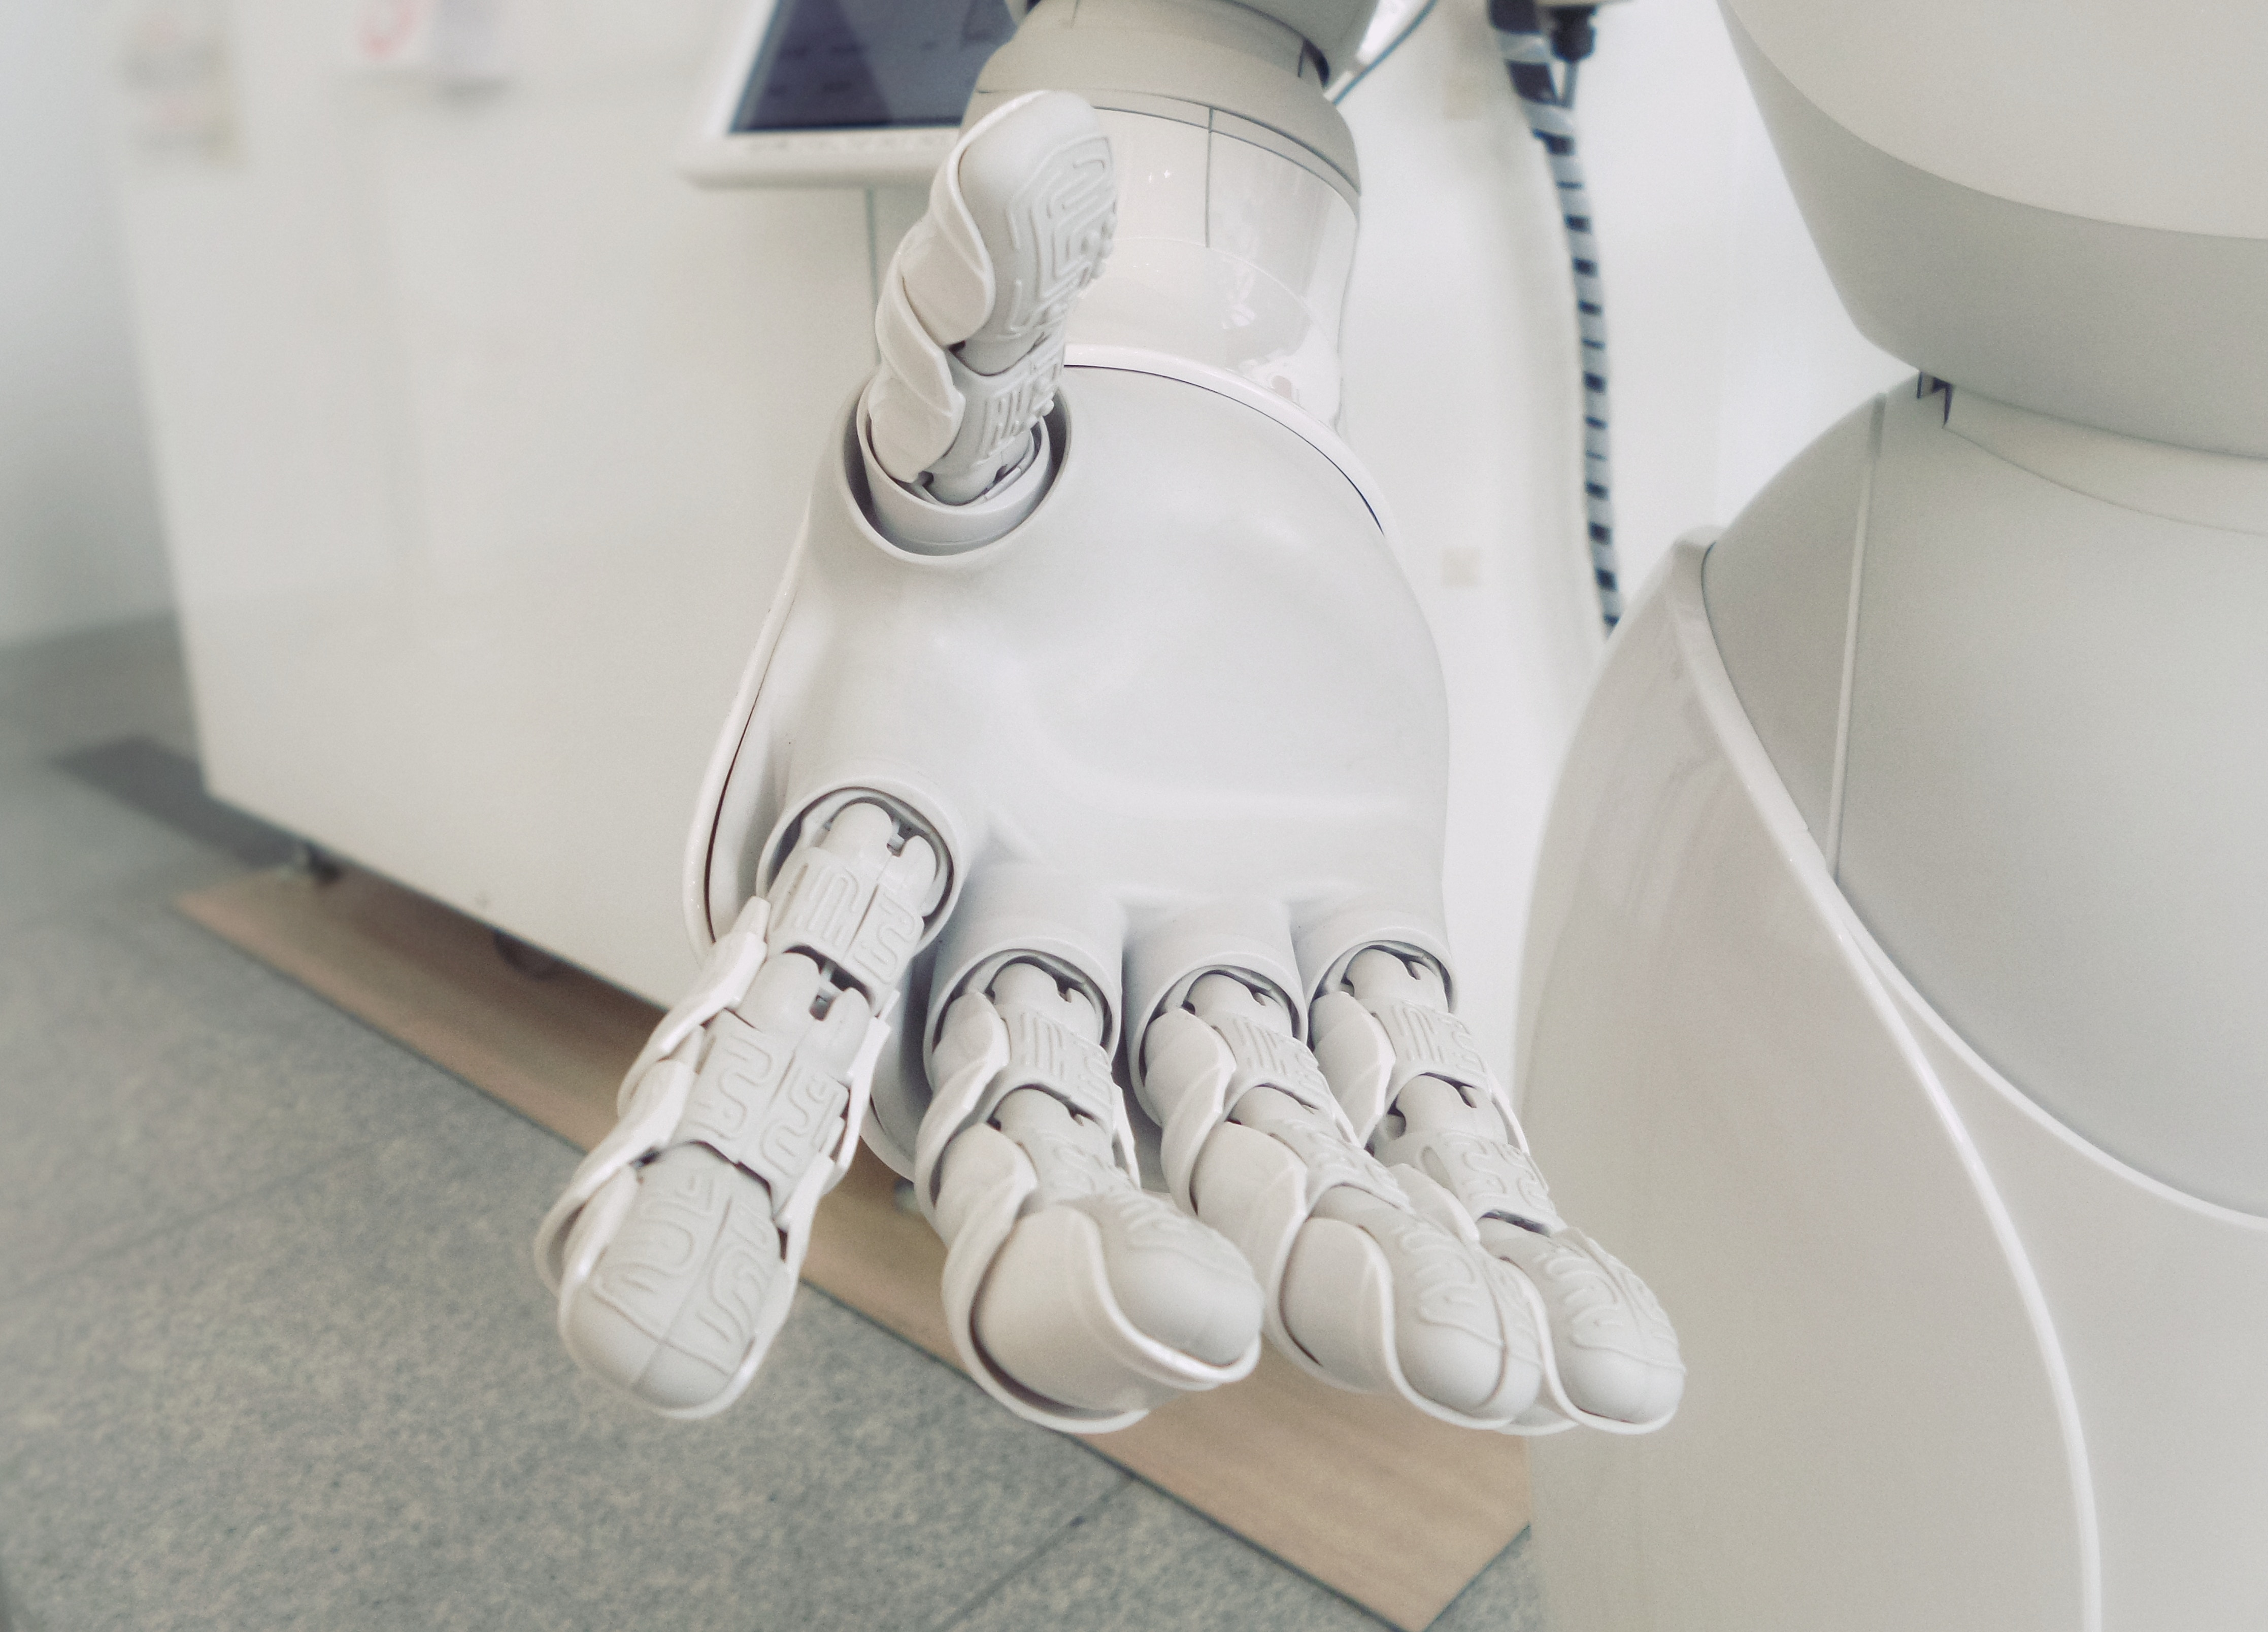 Why Credit Unions Need to Implement Artificial Intelligence ASAP